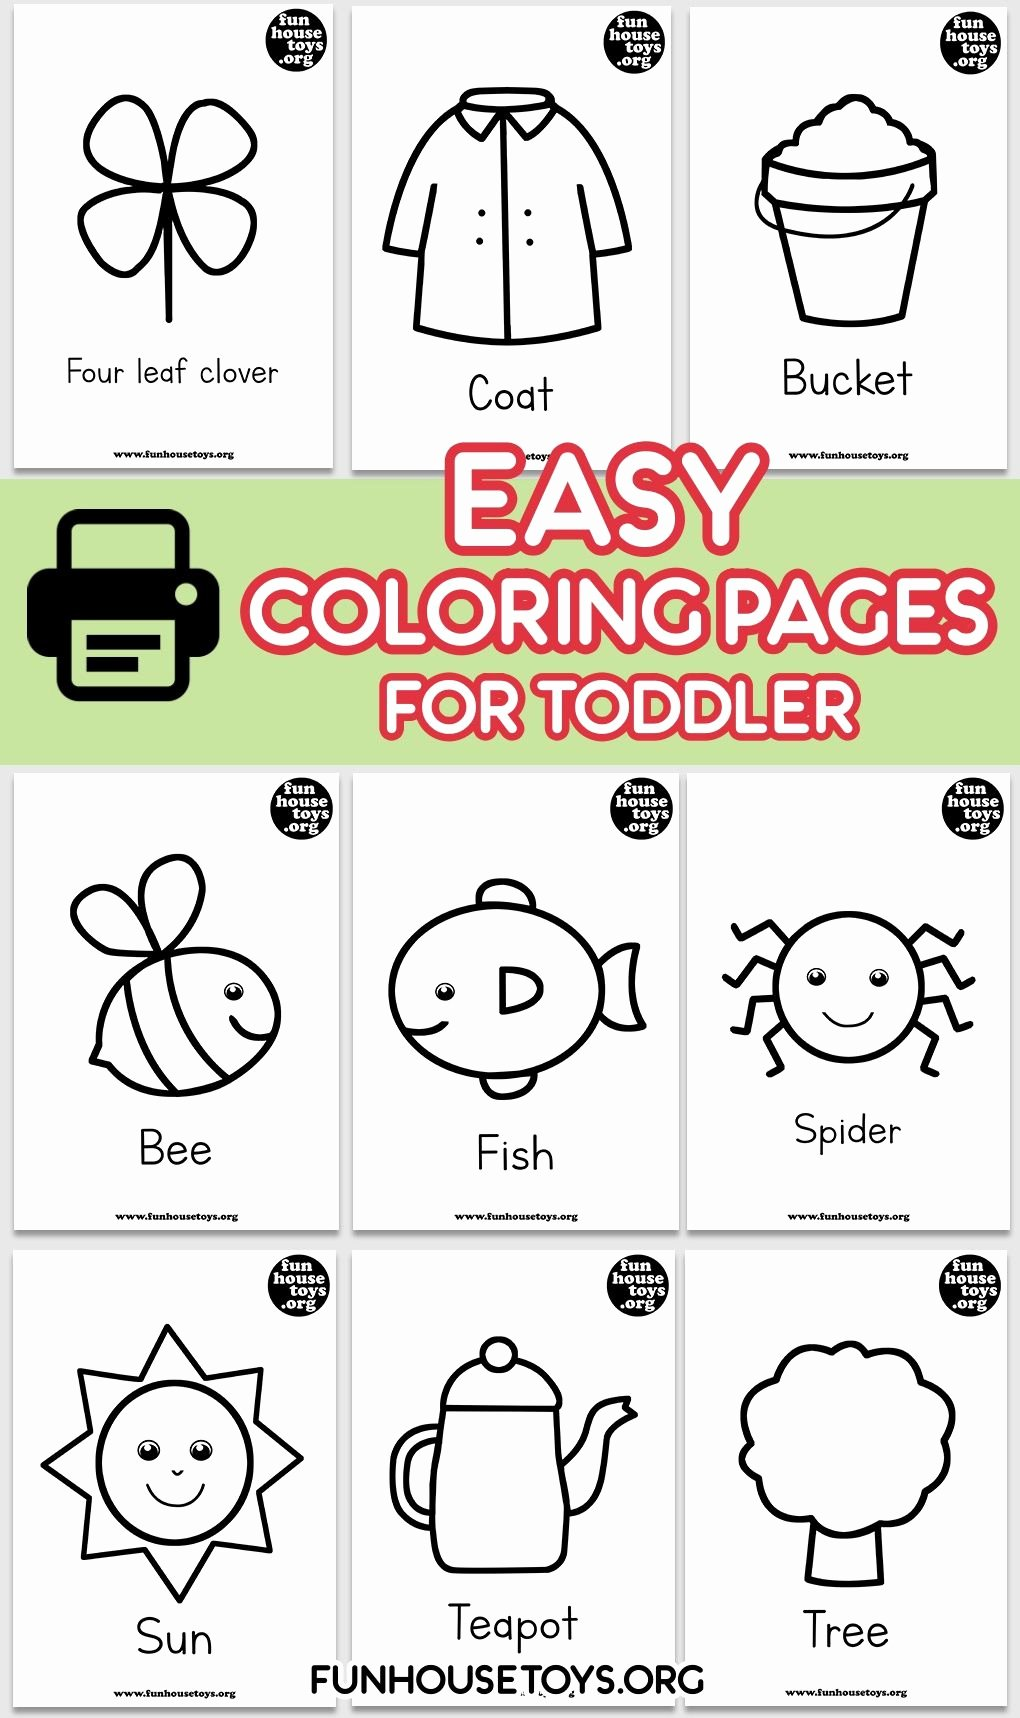 Simple Coloring Worksheets for Preschoolers Best Of Easy and Simple Coloring Pages for toddlers Age 2 Years and